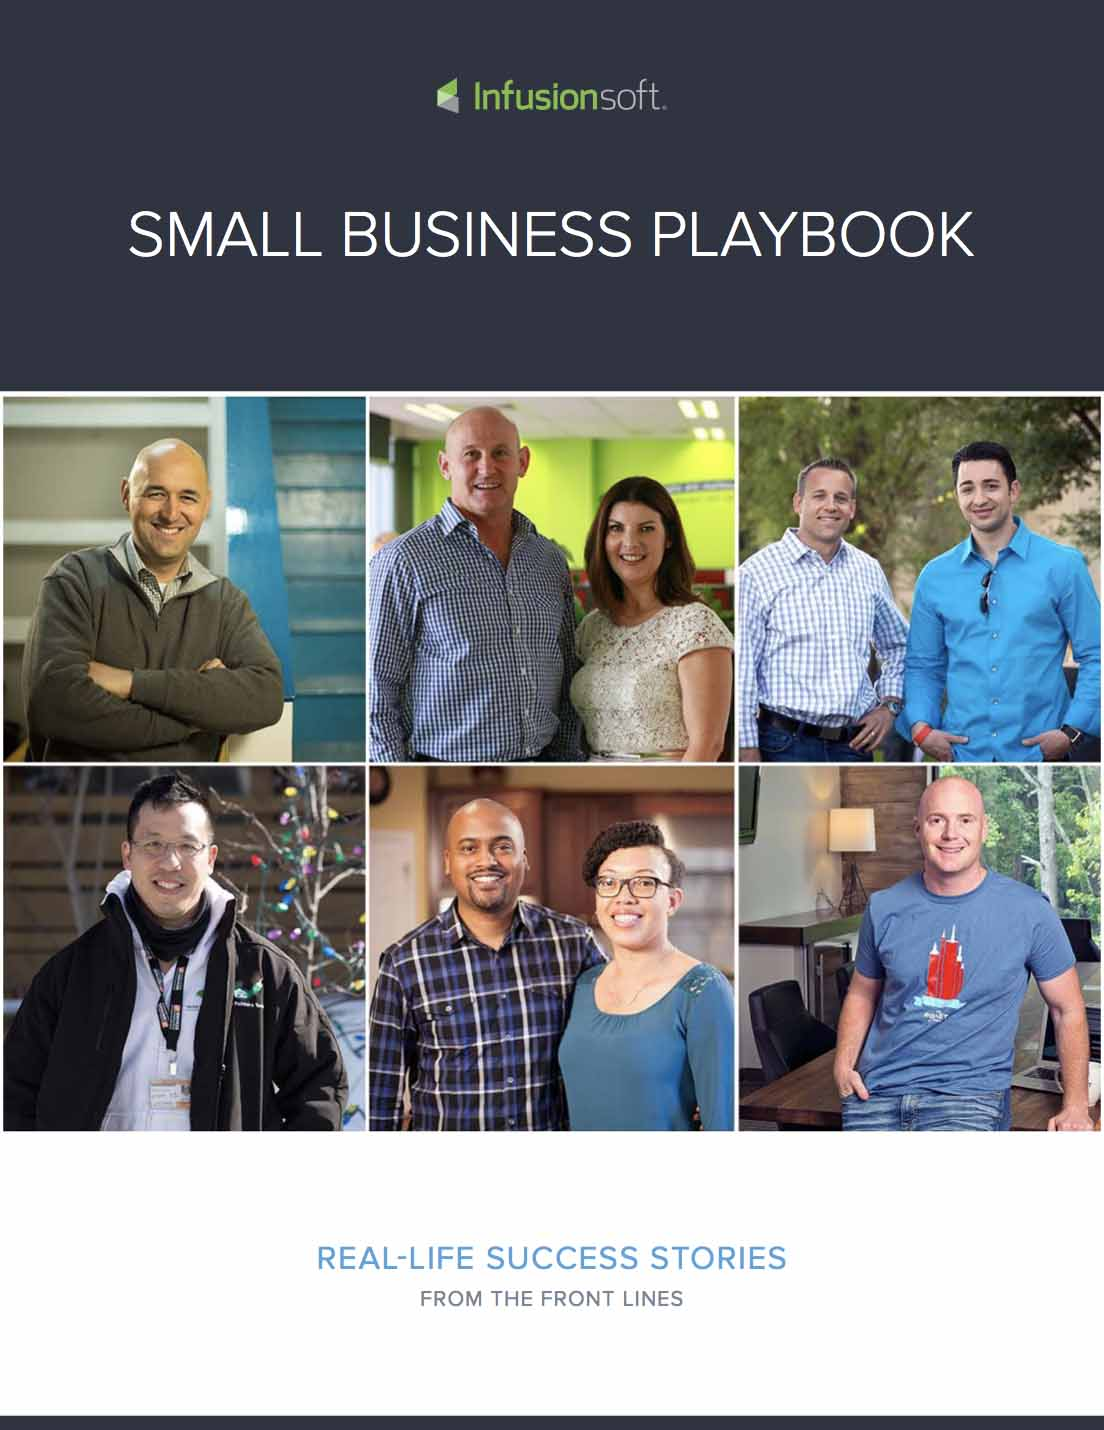 Small Business Playbook